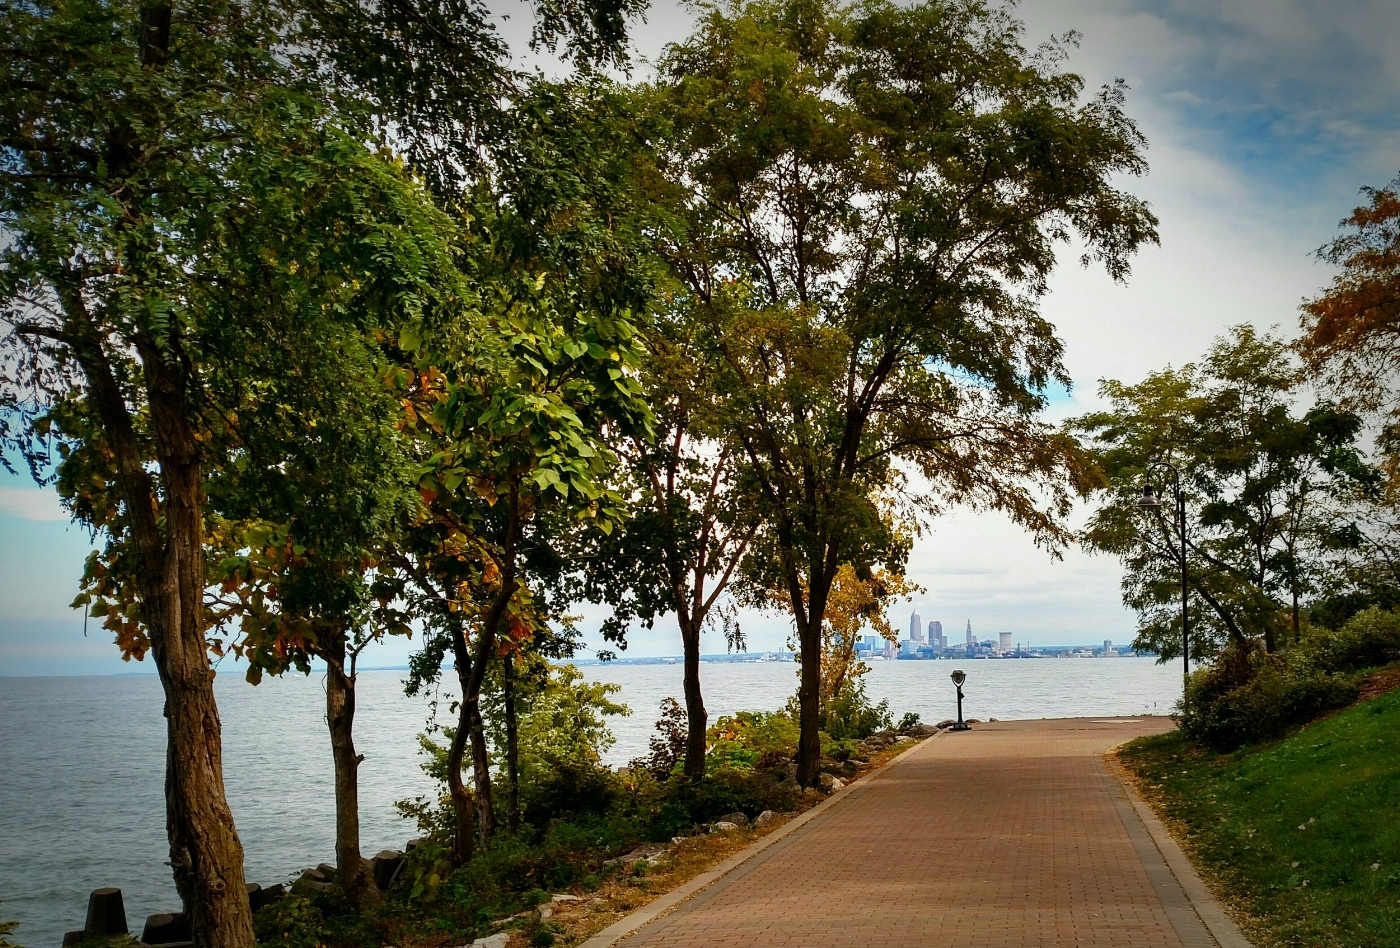 Lakewood Park with downtown Cleveland in the background.